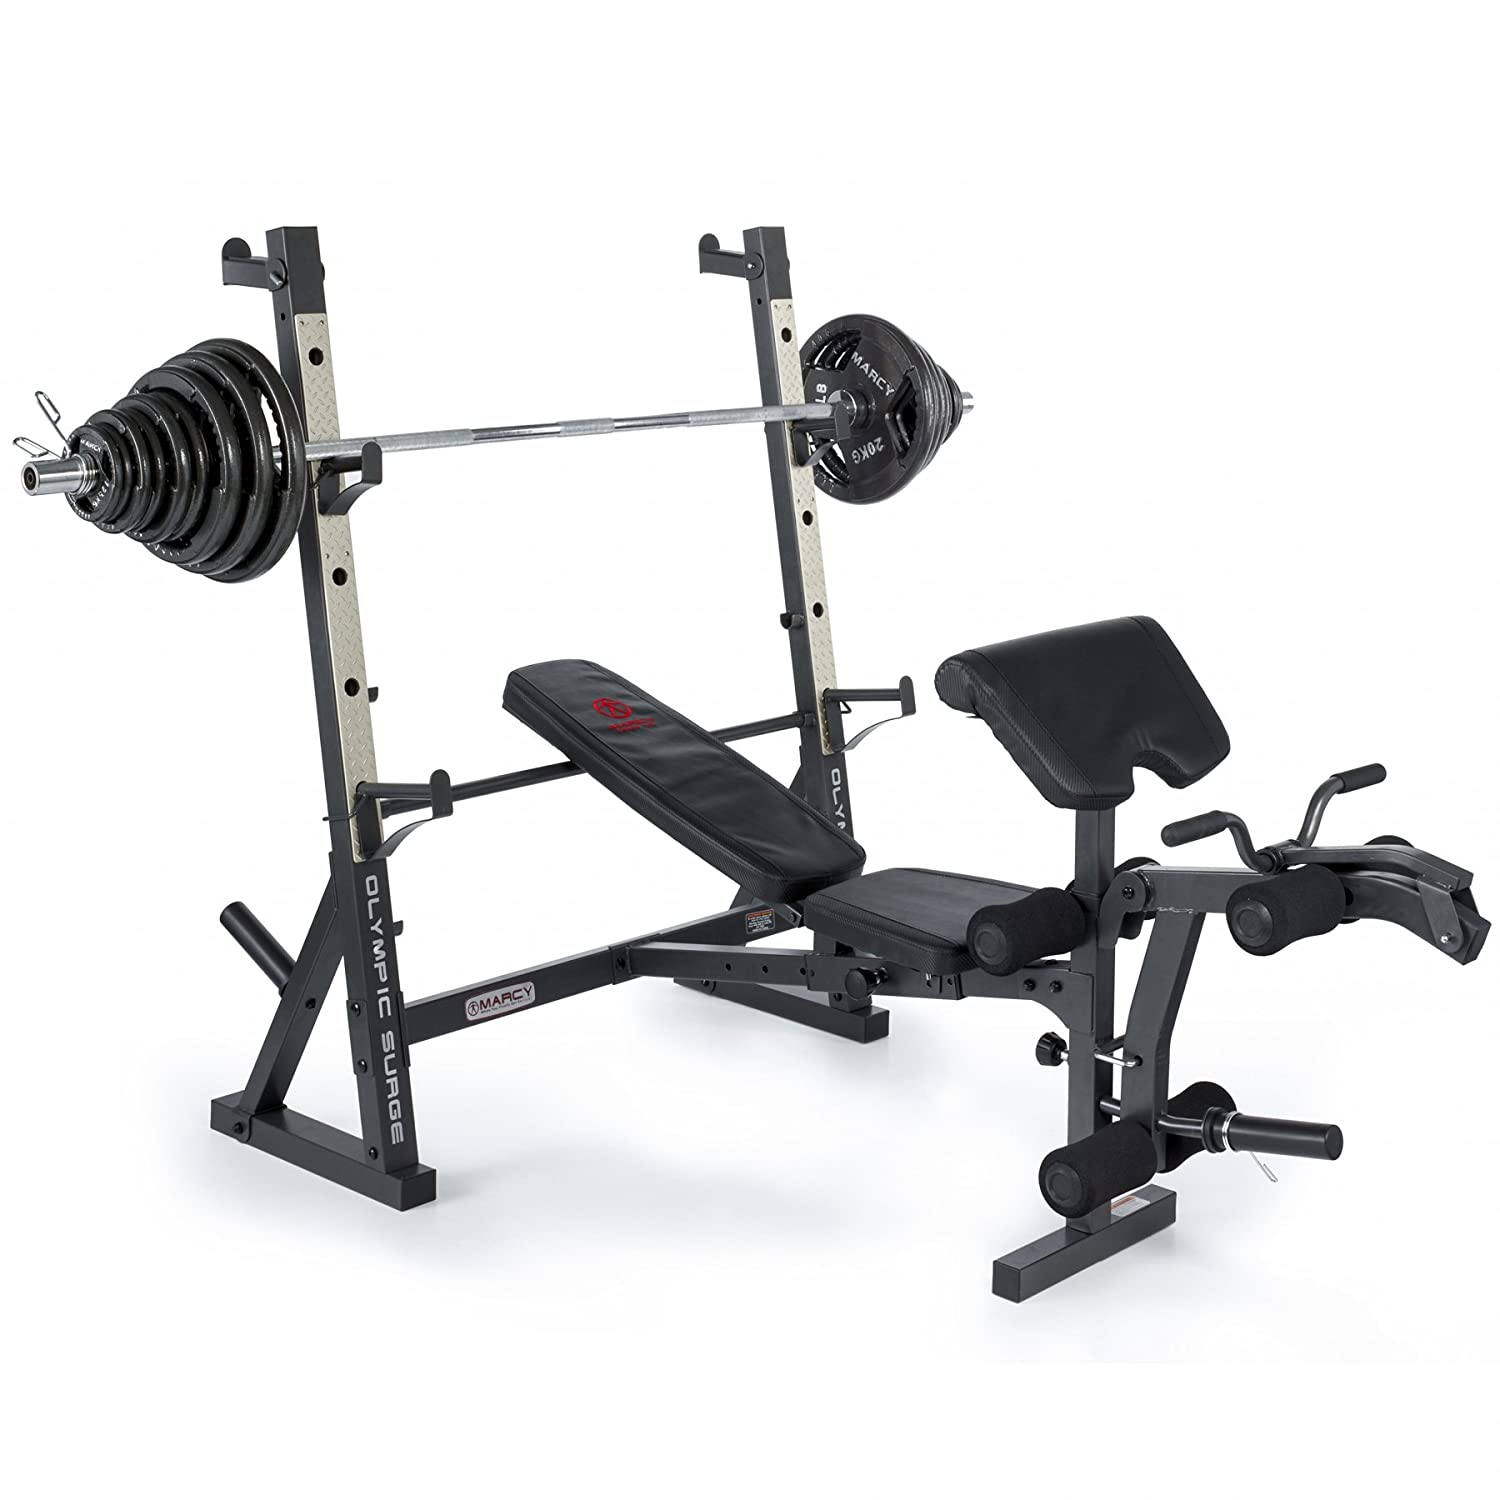 sharpen weights weider weight spin jsp sears product with op wid hei d details pro prod outlet bench benches l